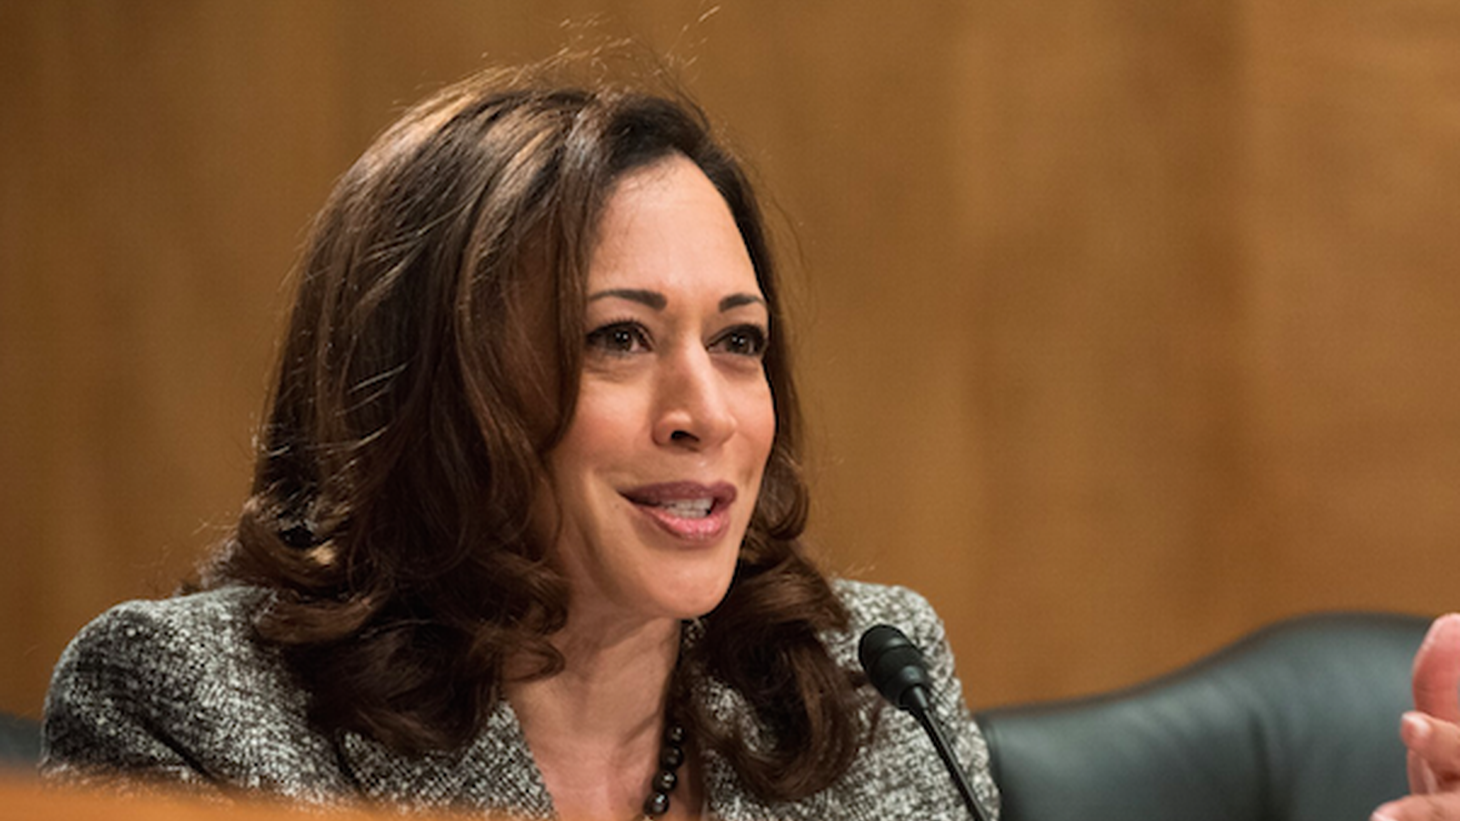 Democrats are waging an intense battle to block Judge Brett Kavanaugh from joining the Supreme Court. Moments after President Trump nominated him, California Senator Kamala Harris said she'd vote no.